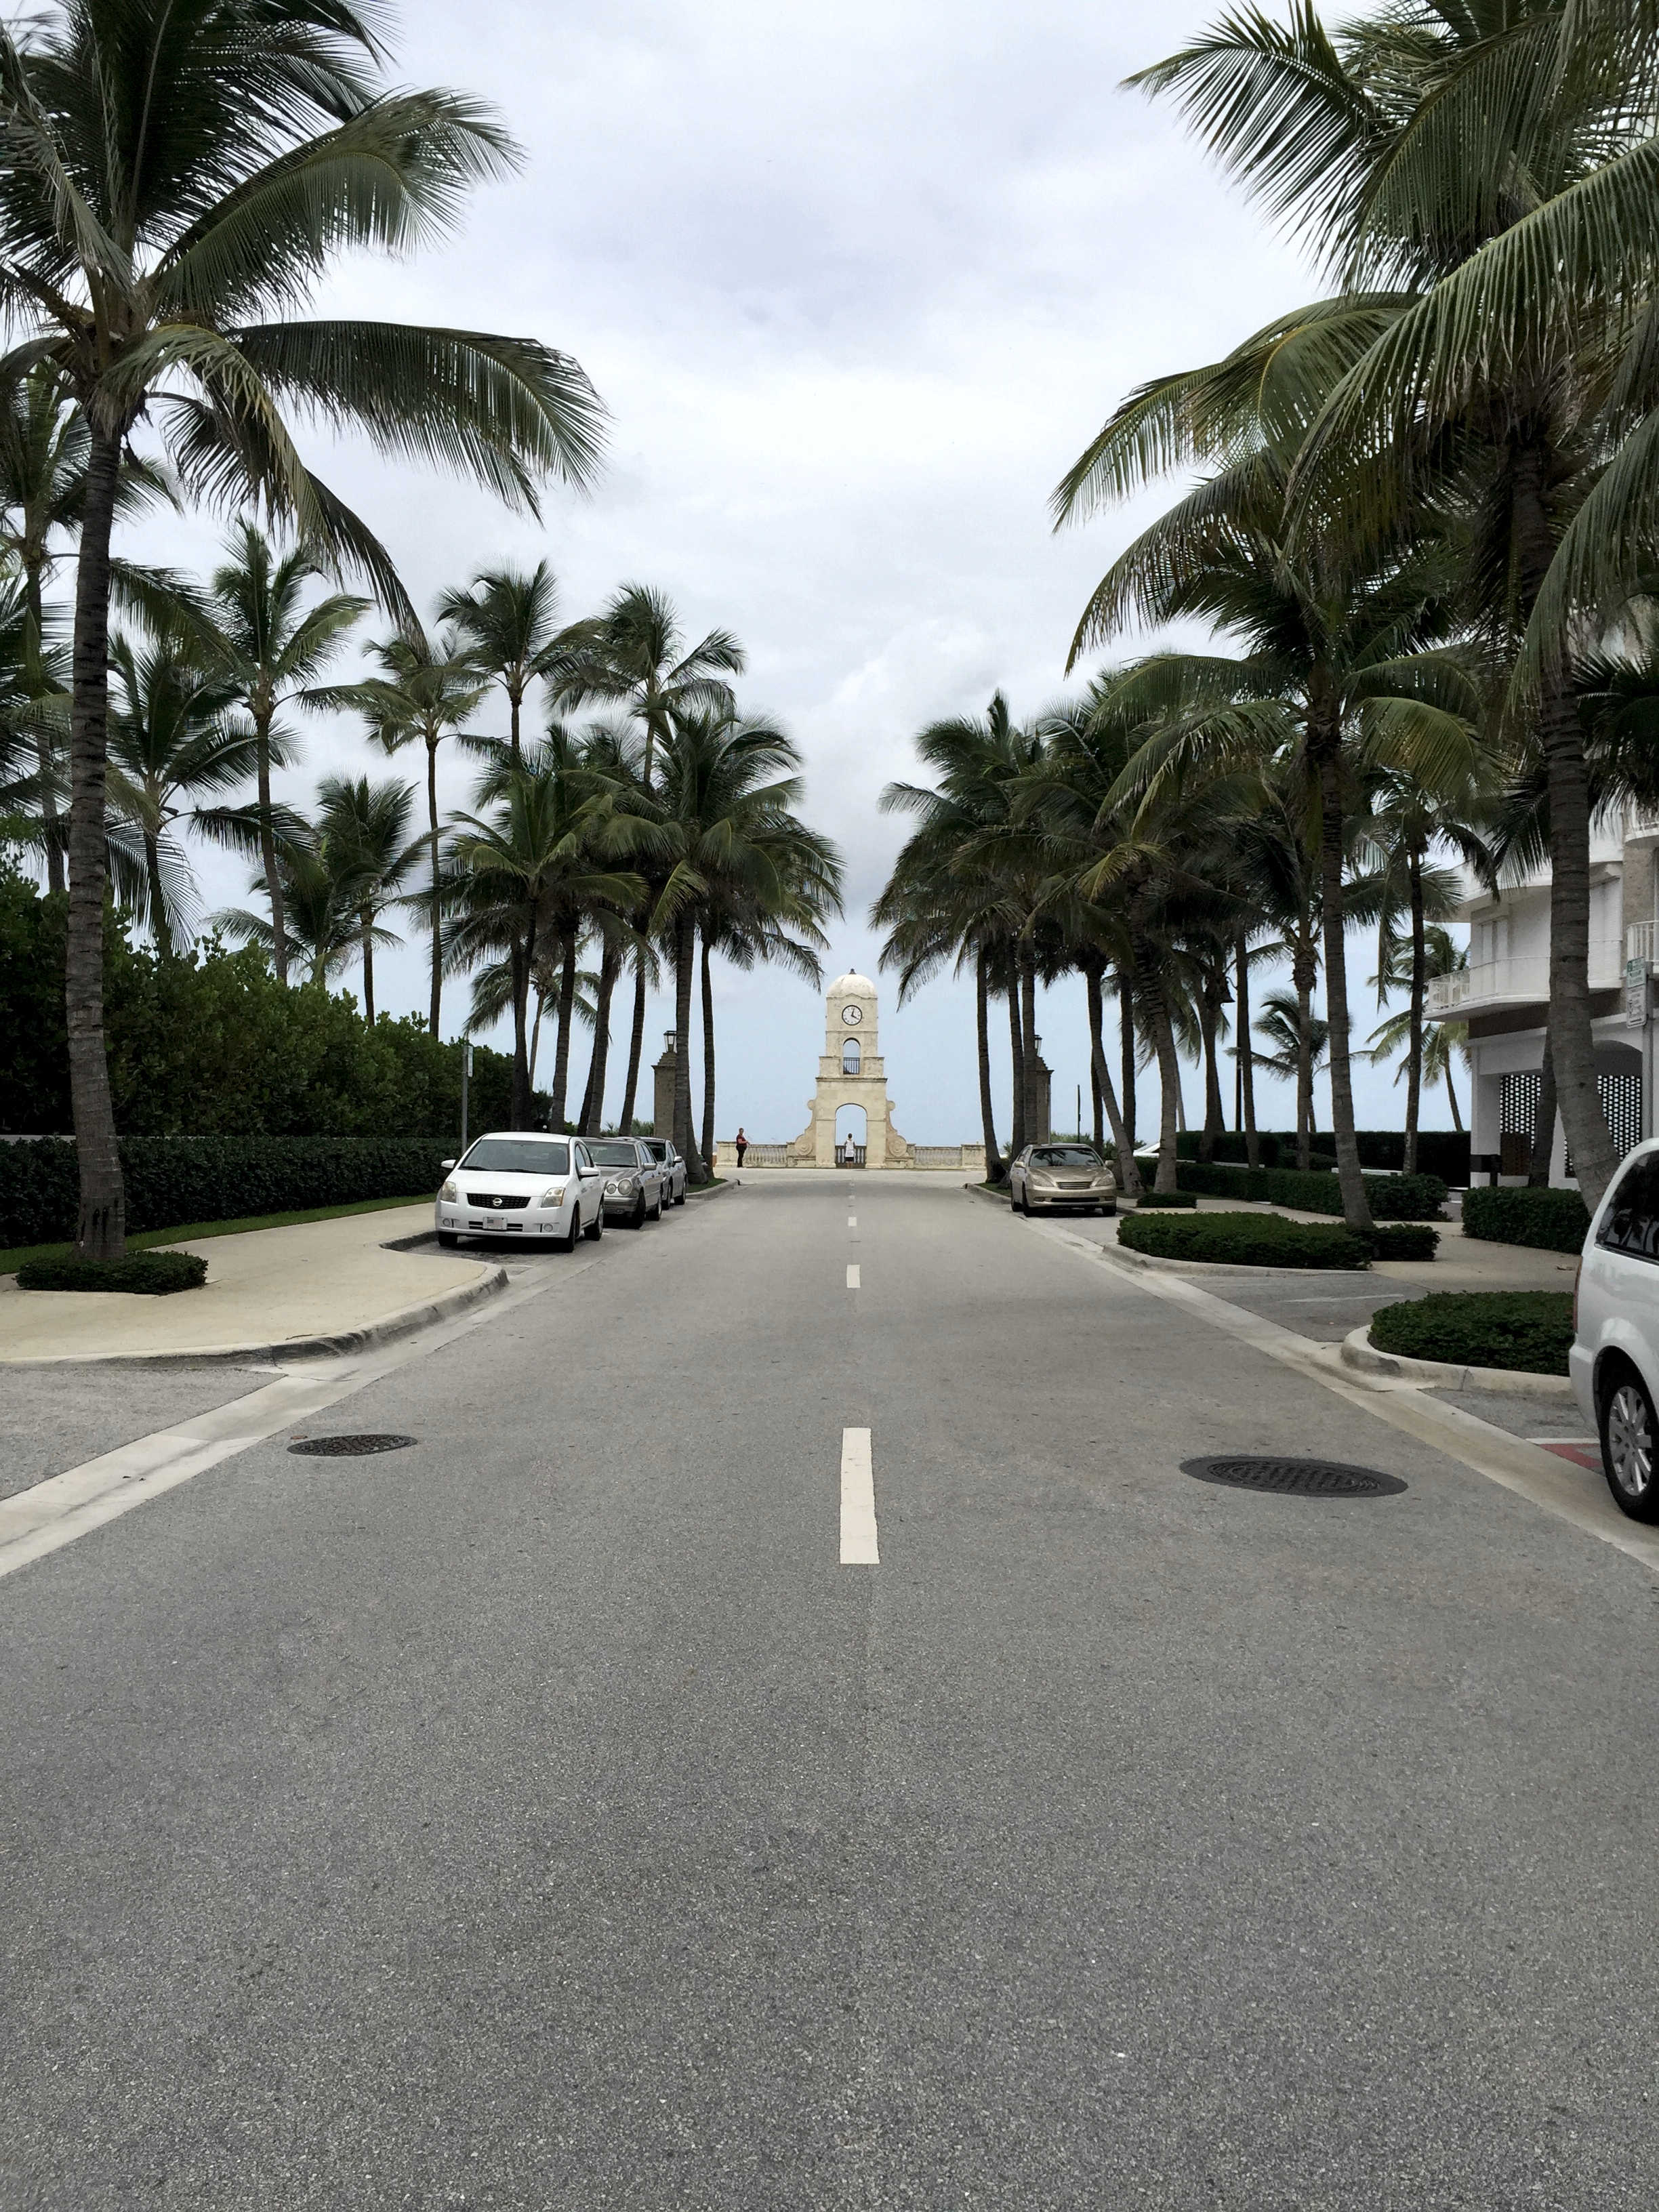 Worth Ave - Clock Tower - Street View - Palm Trees - Palm Beach